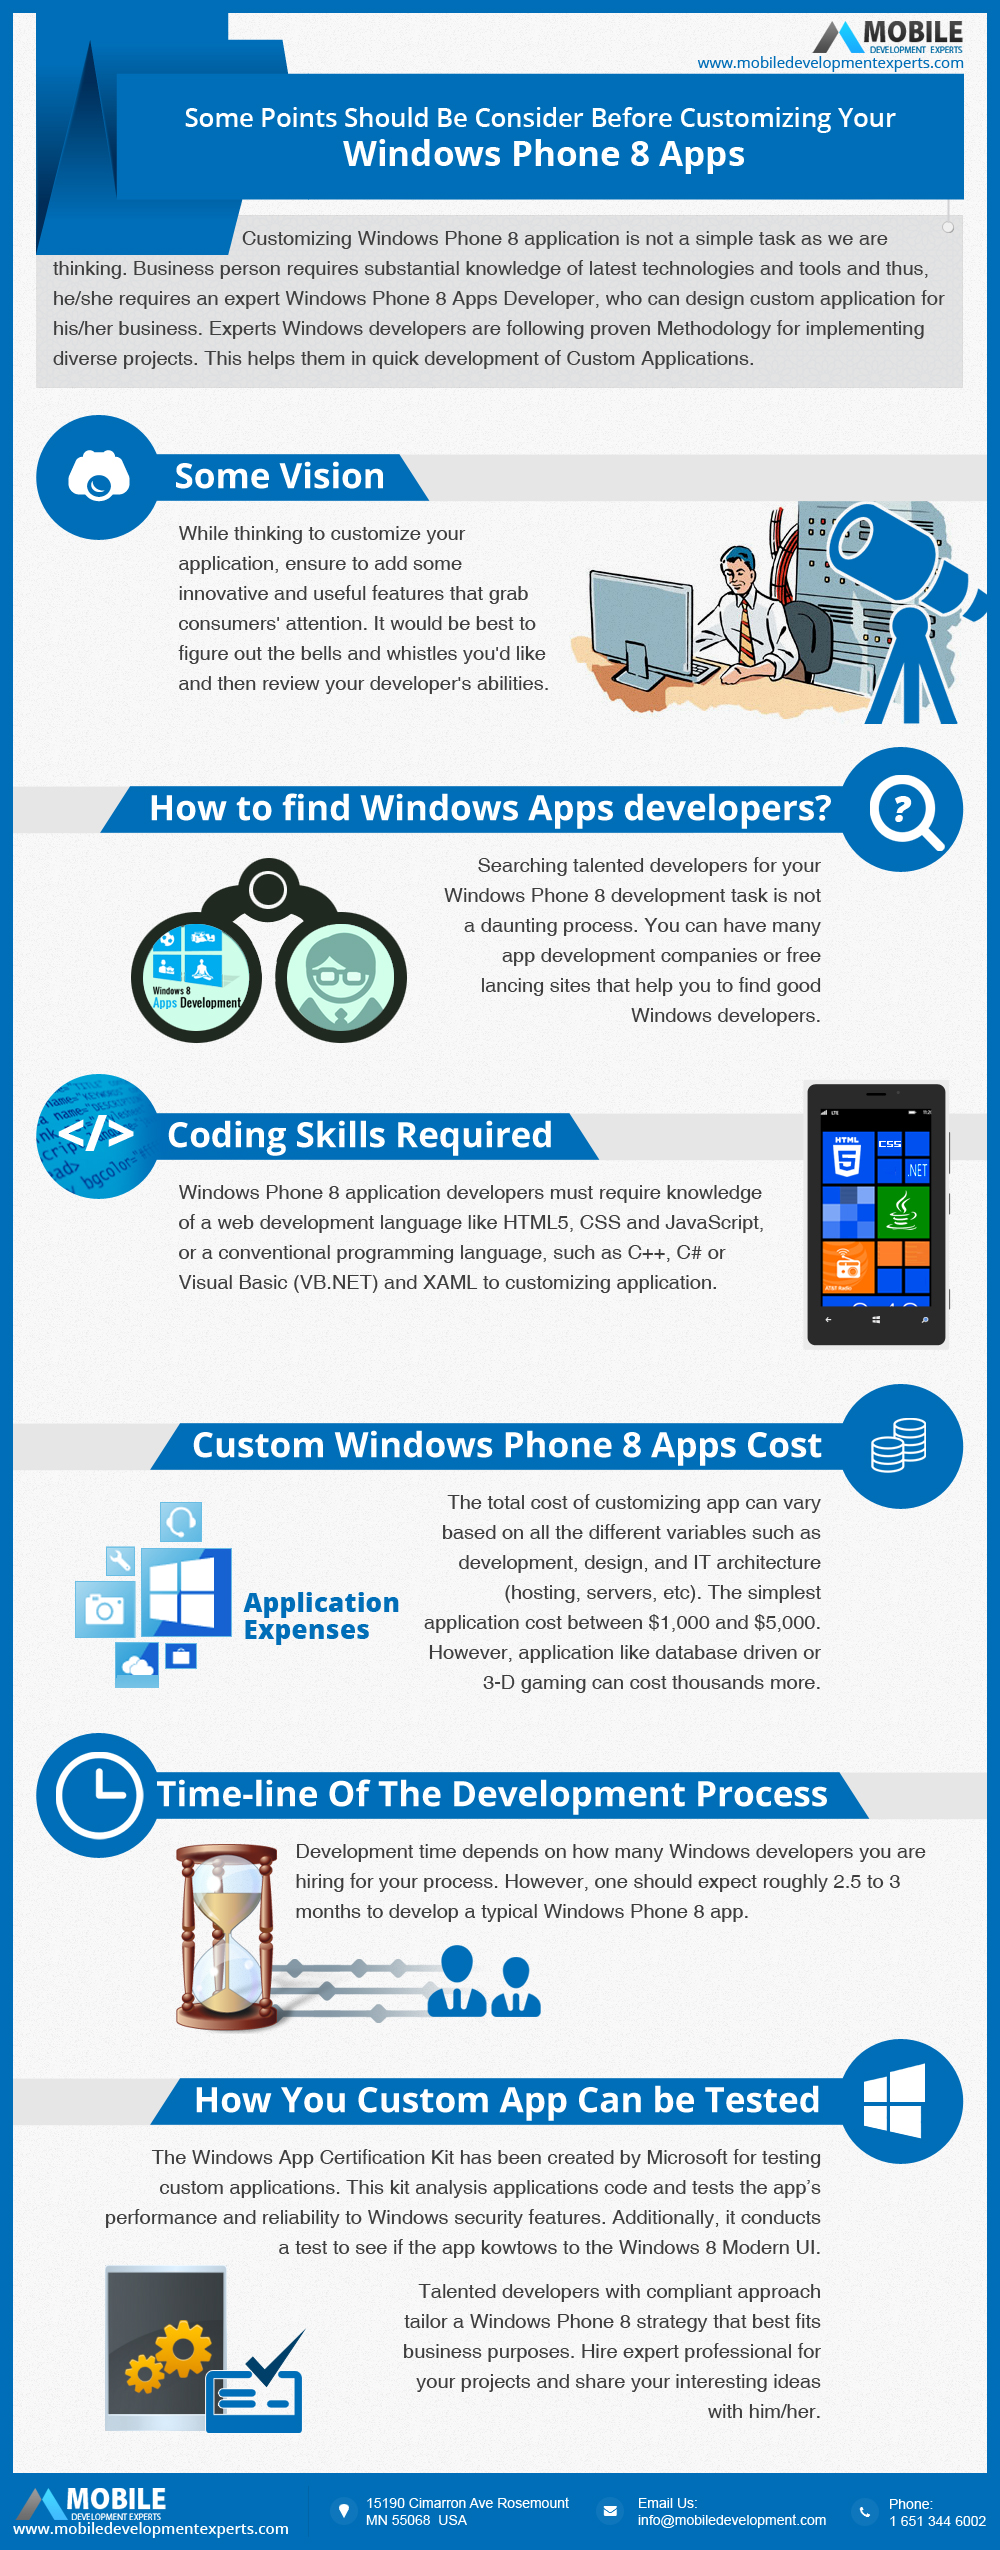 Some Points Should Be Consider Before Customizing Your Windows Phone 8 Apps